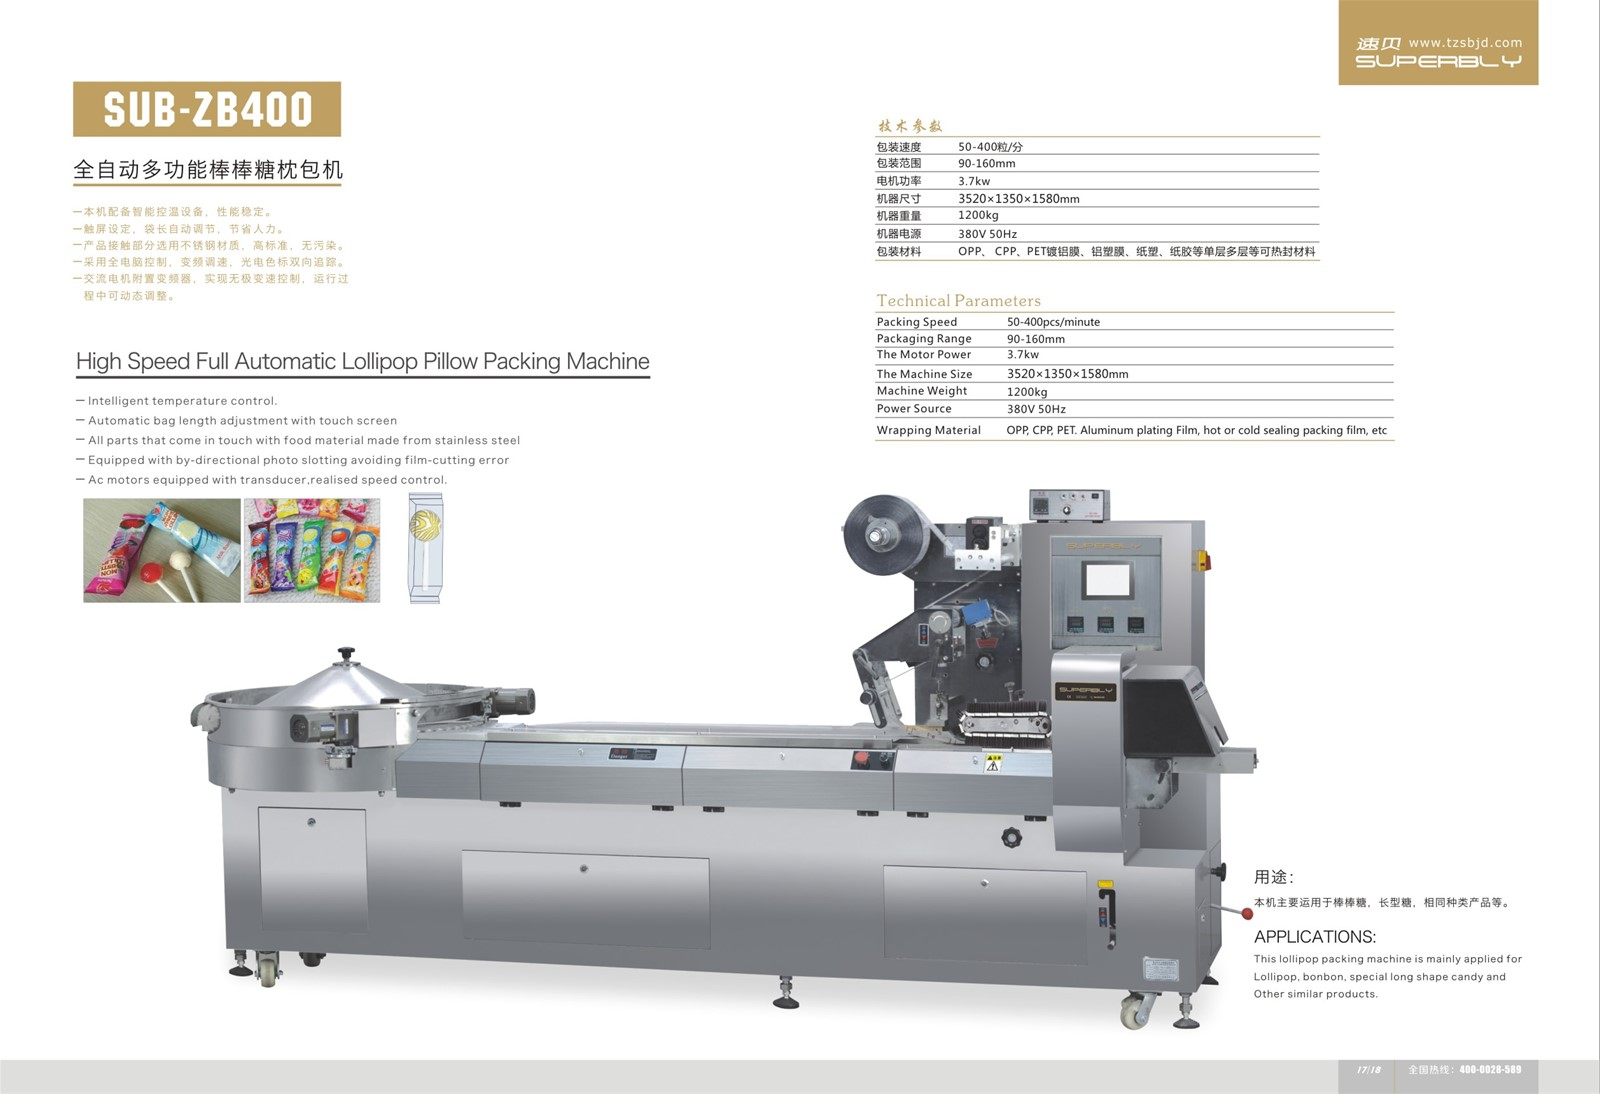 High Speed Full Automatic Lolipop Pillow Packing Machine